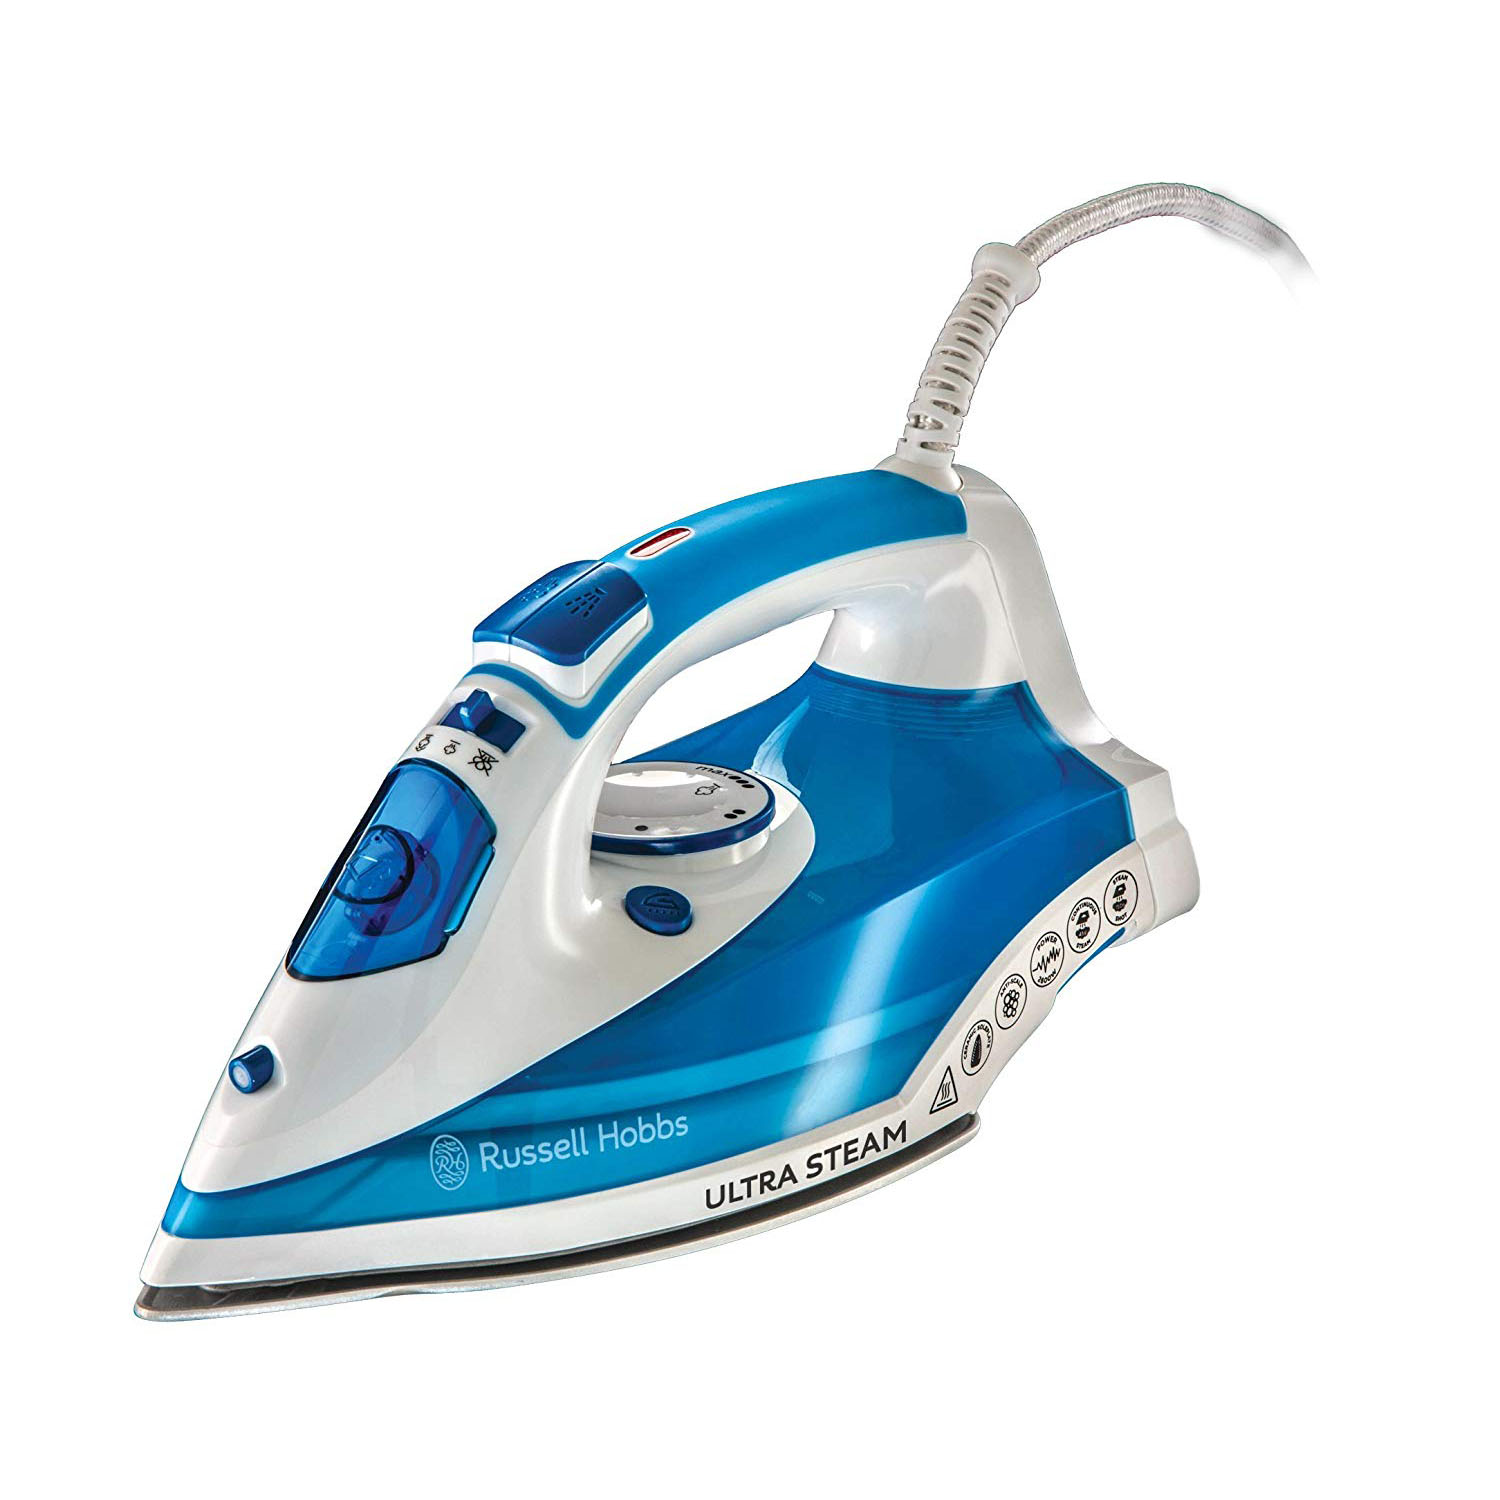 Russell Hobbs 23980 Ultra Steam Iron - Blue